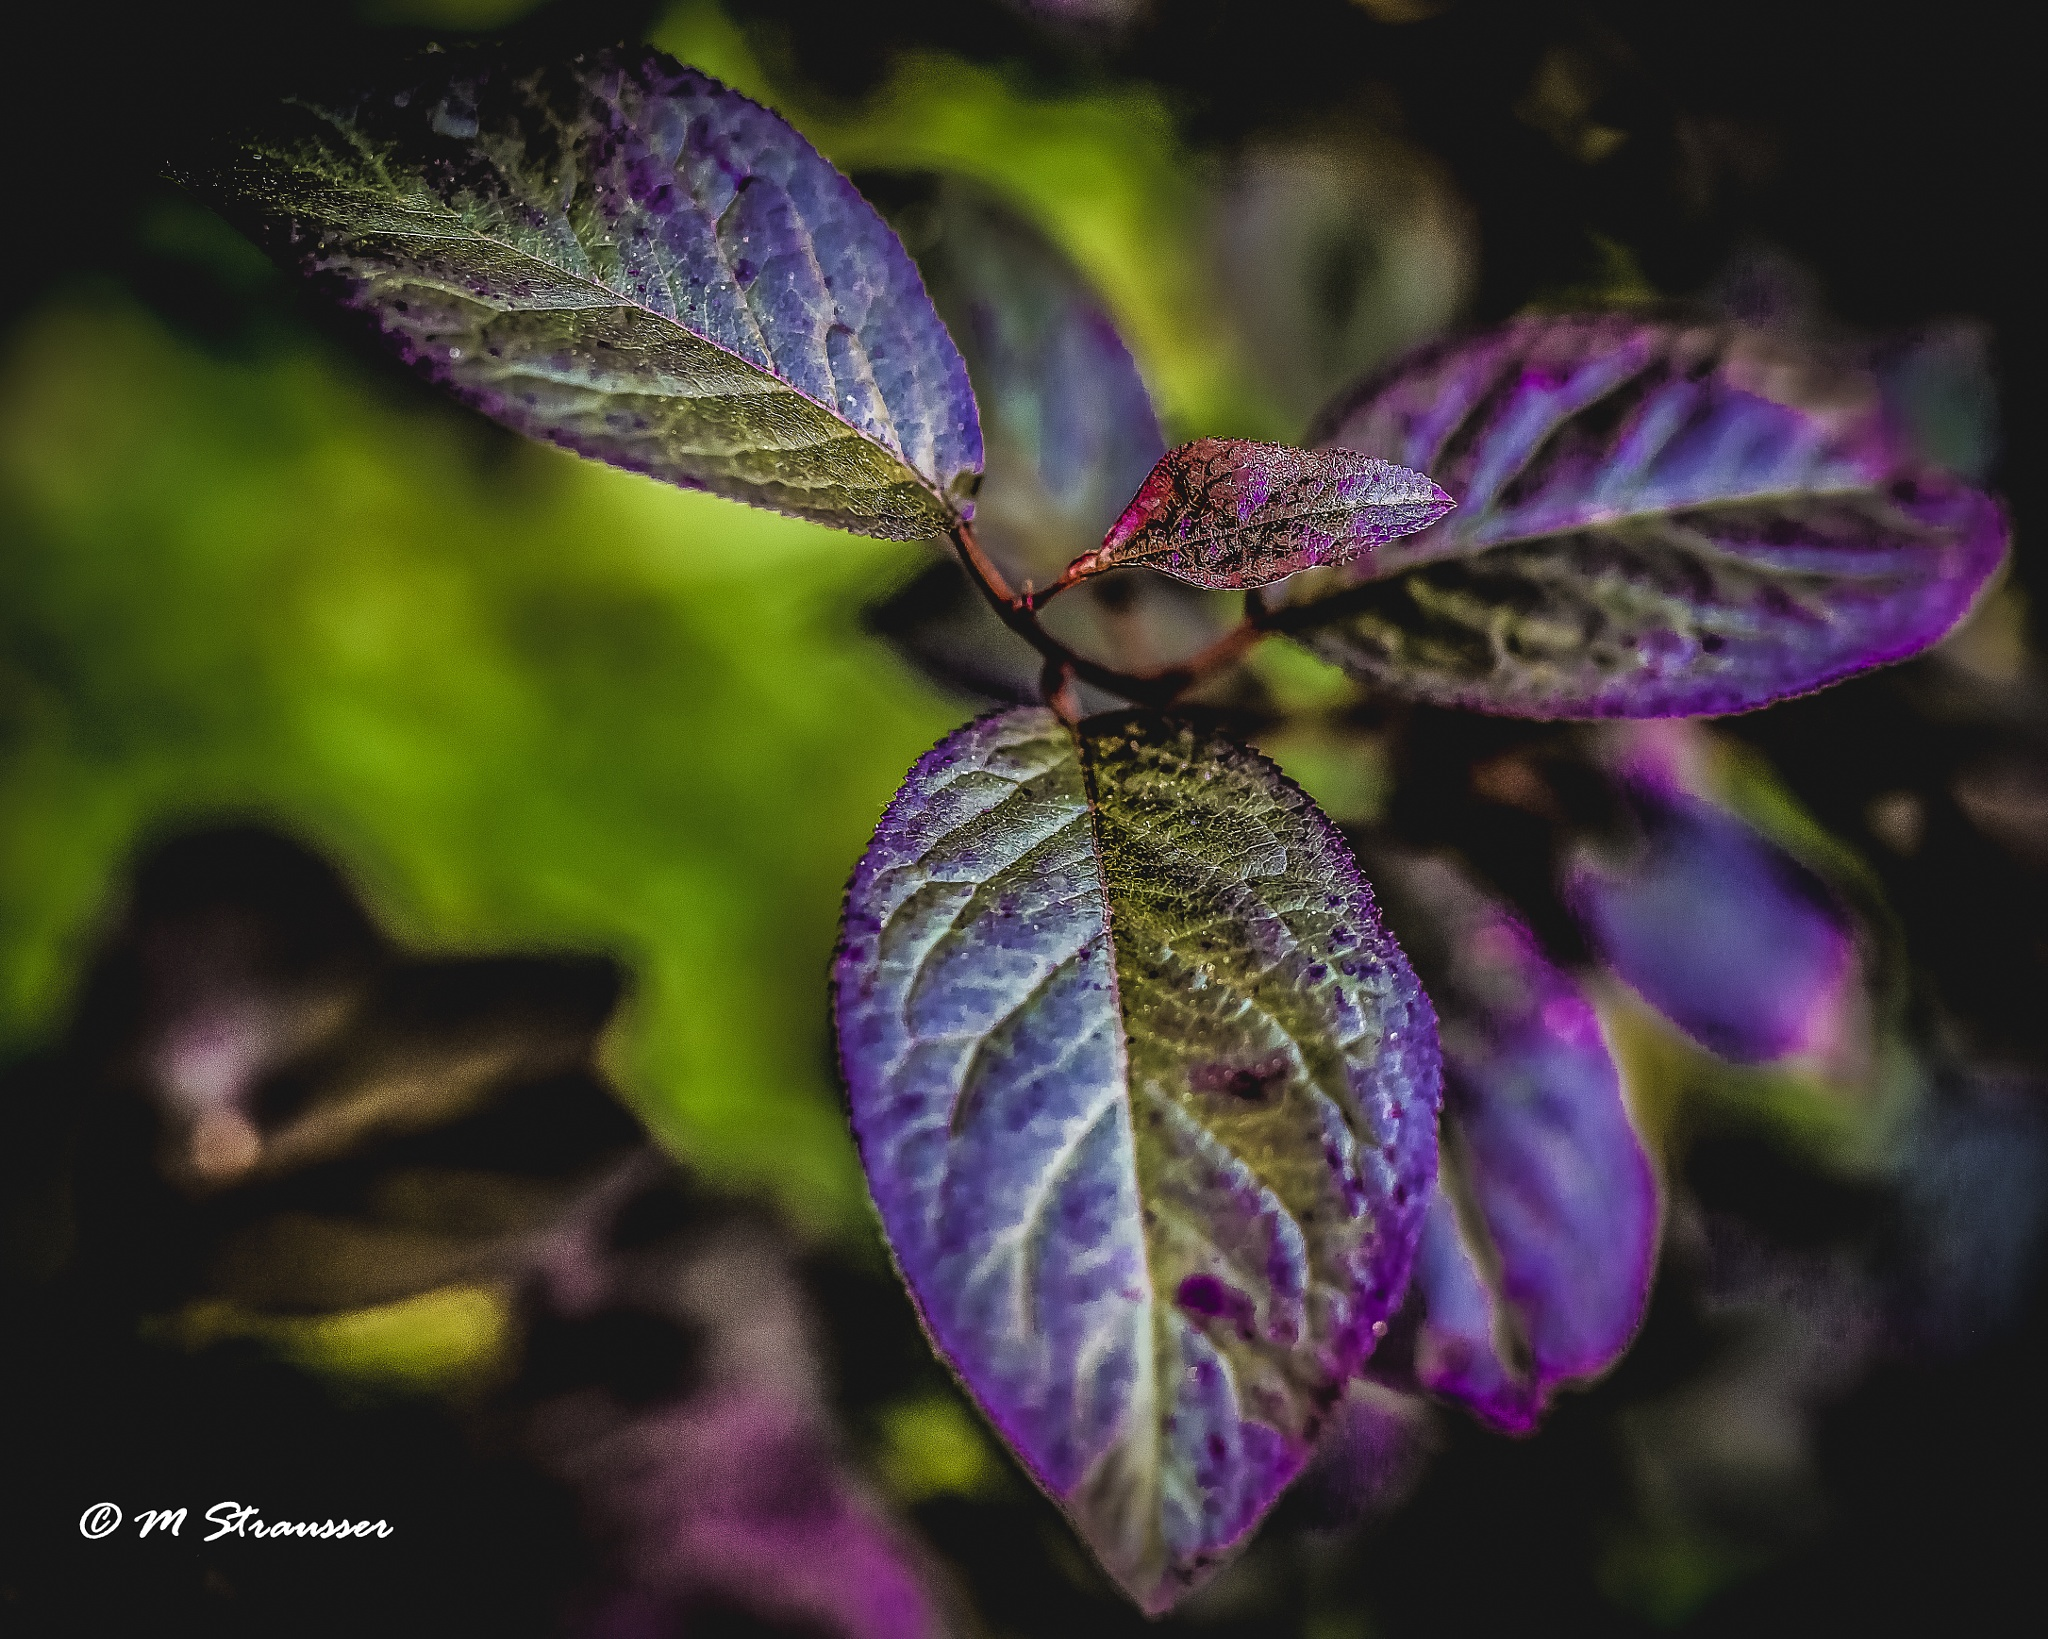 leaves by MStrausser of the iMage Shack